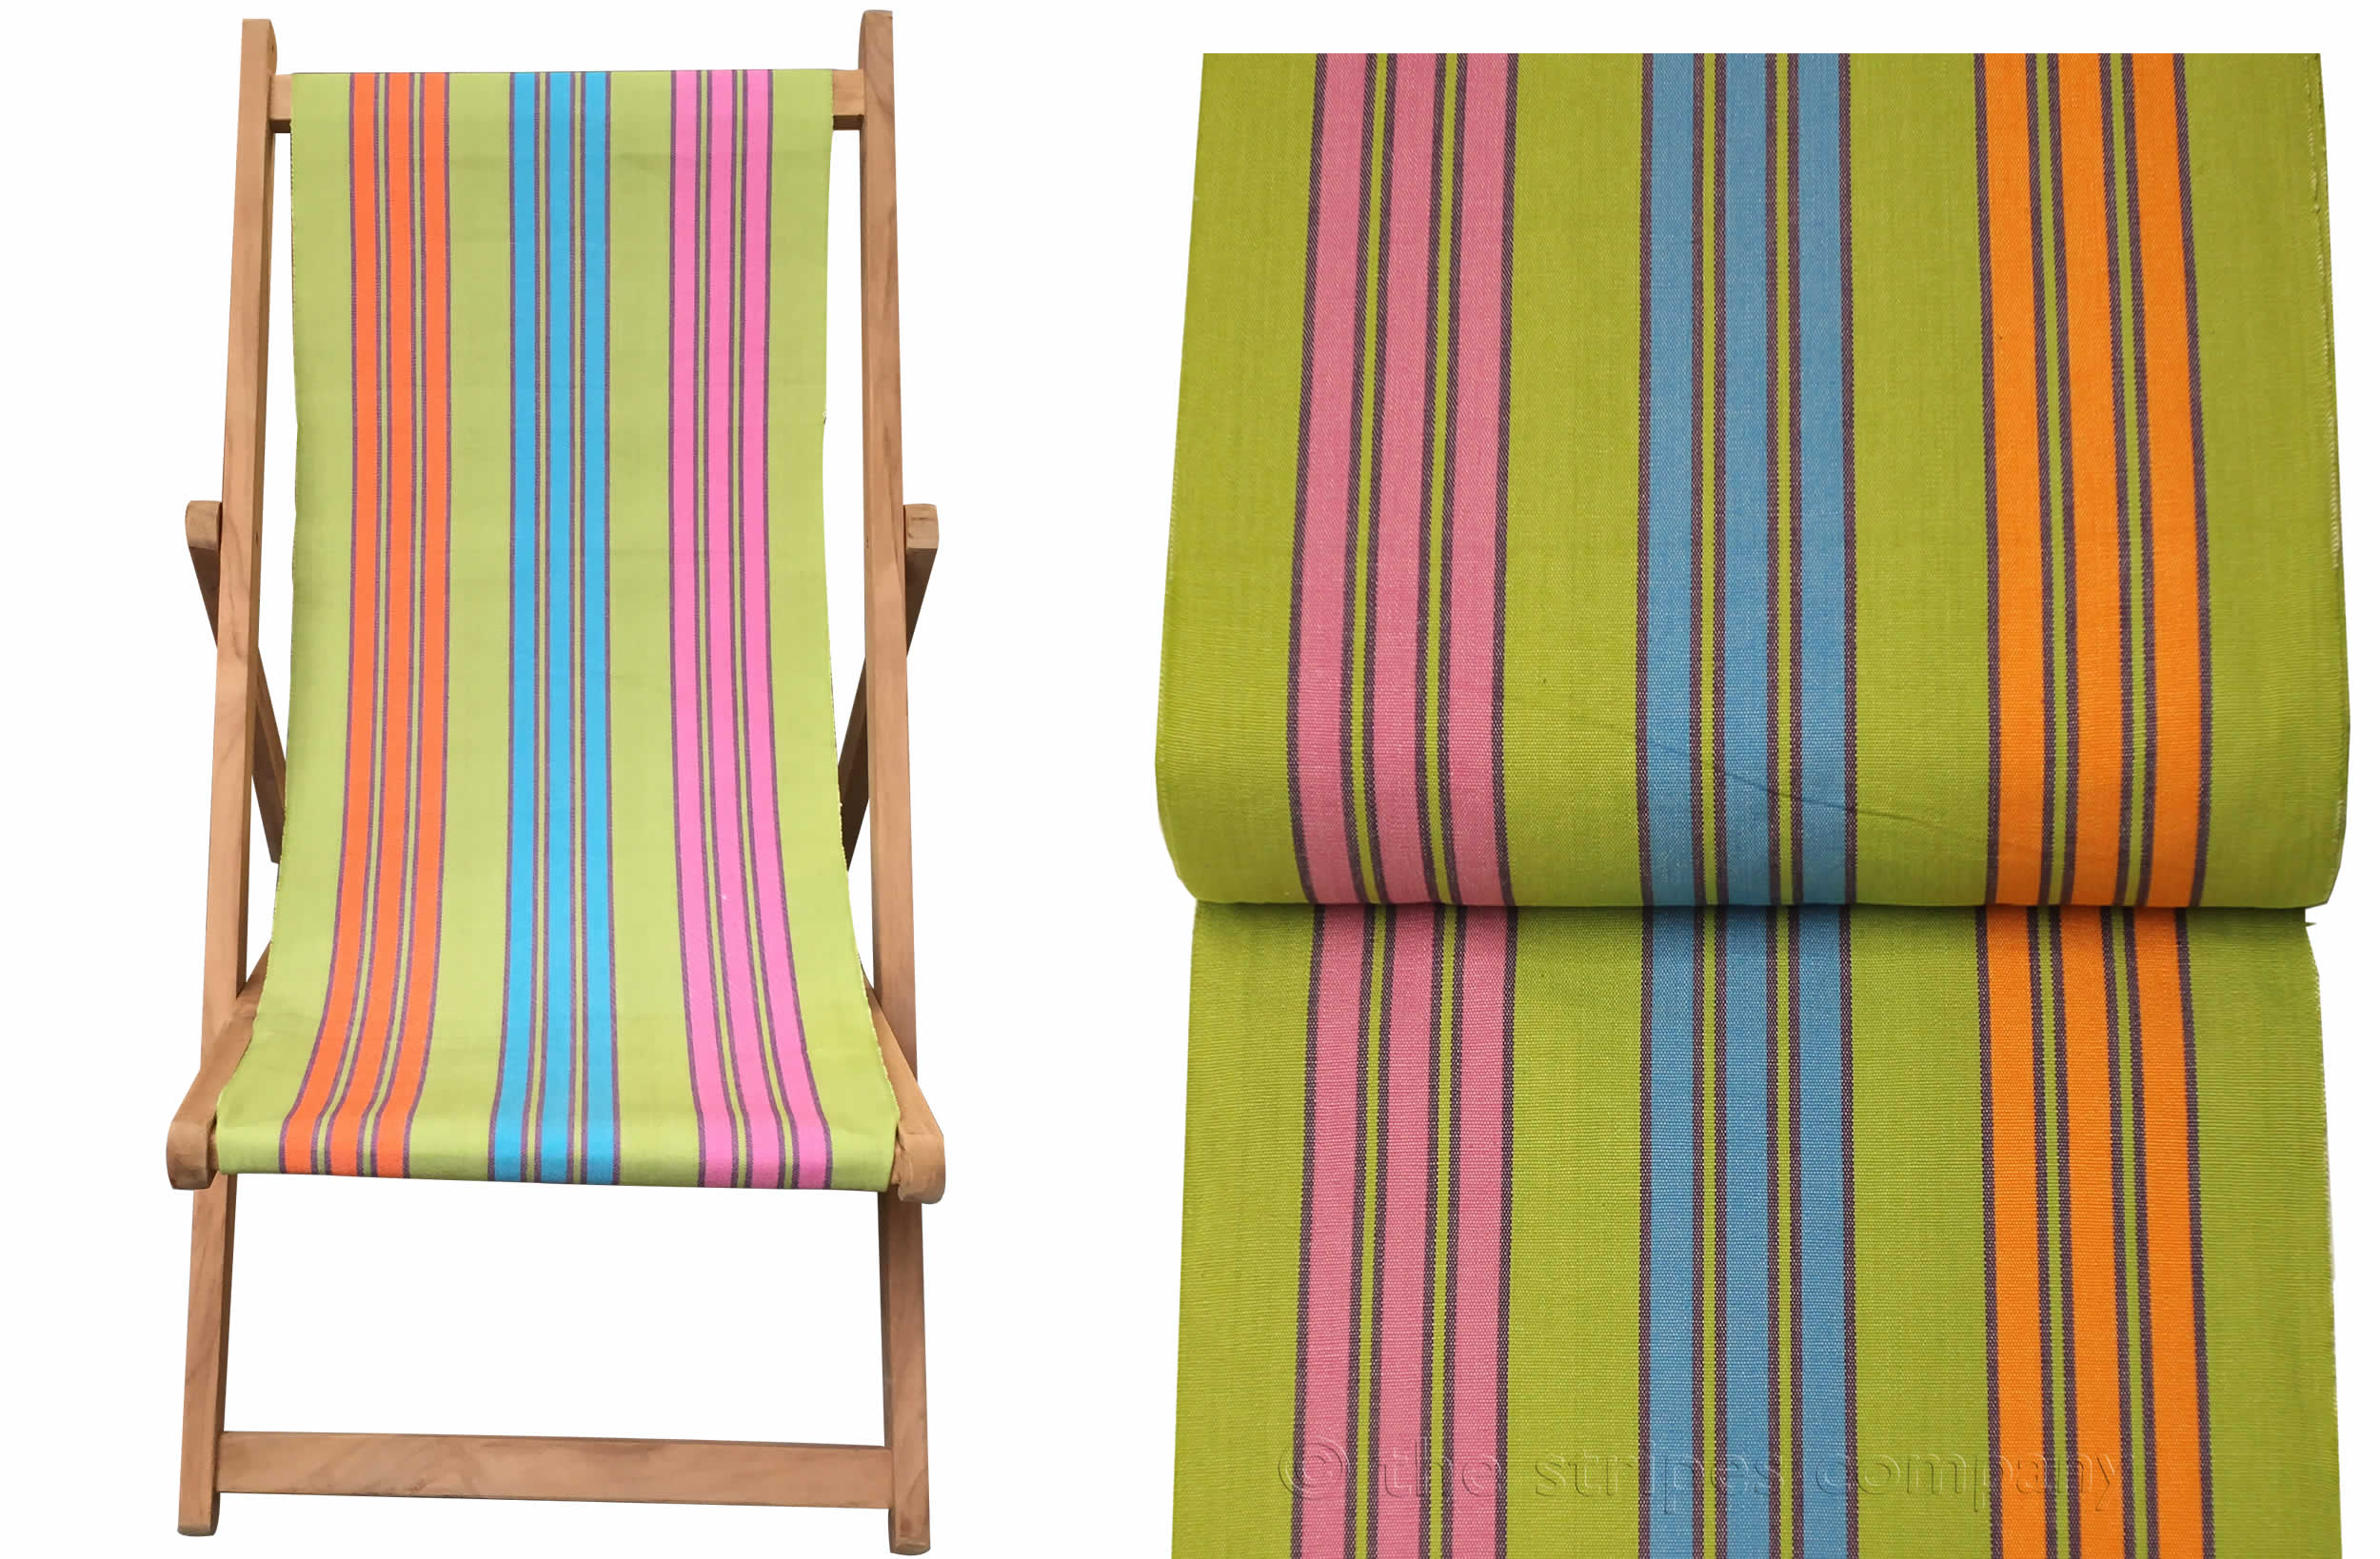 Teak Deck Chairs green, turquoise, pink stripes